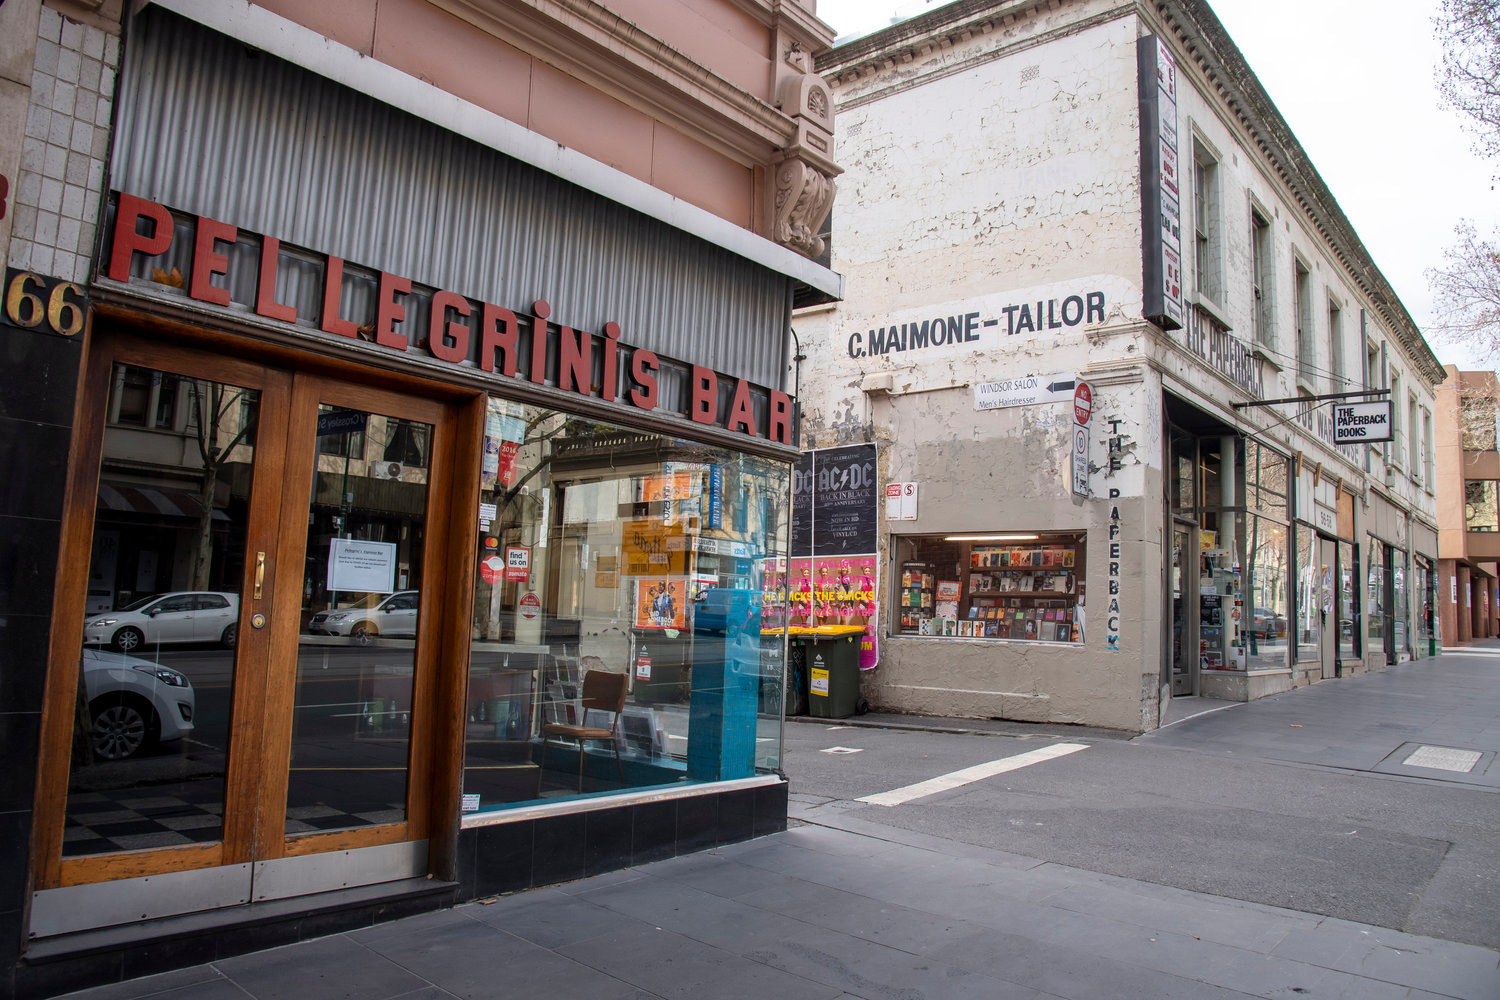 Pellegrinis Cafe and The Paperback book store closed during lockdown due to the continuing spread of the coronavirus in Melbourne, Thursday, Aug. 6, 2020. Victoria state, Australia's coronavirus hot spot, announced on Monday that businesses will be closed and scaled down in a bid to curb the spread of the virus. (AP Photo/Andy Brownbill)